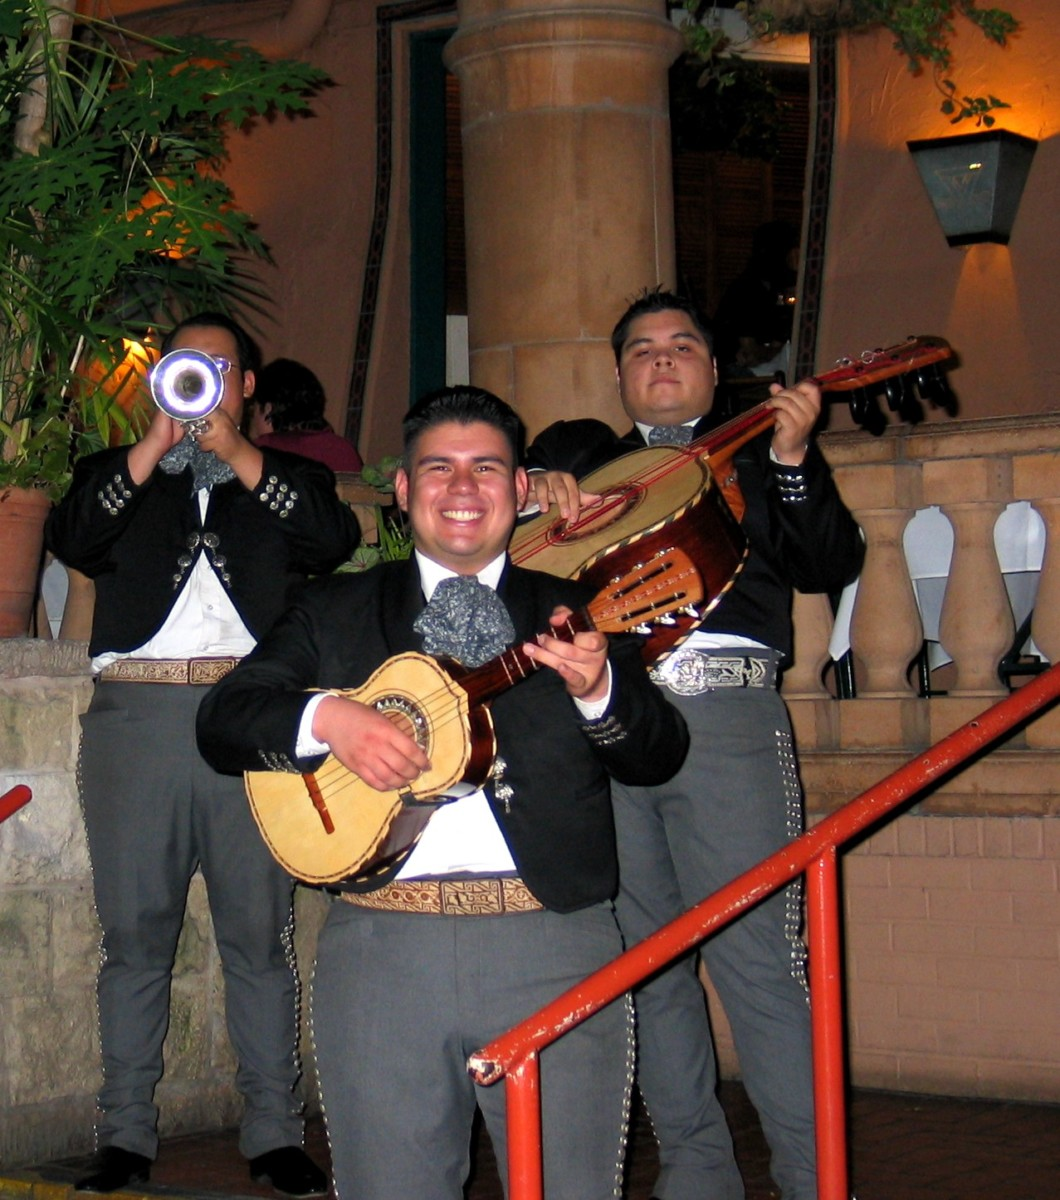 River Walk Mariachis - Romantic Places in the Southwest